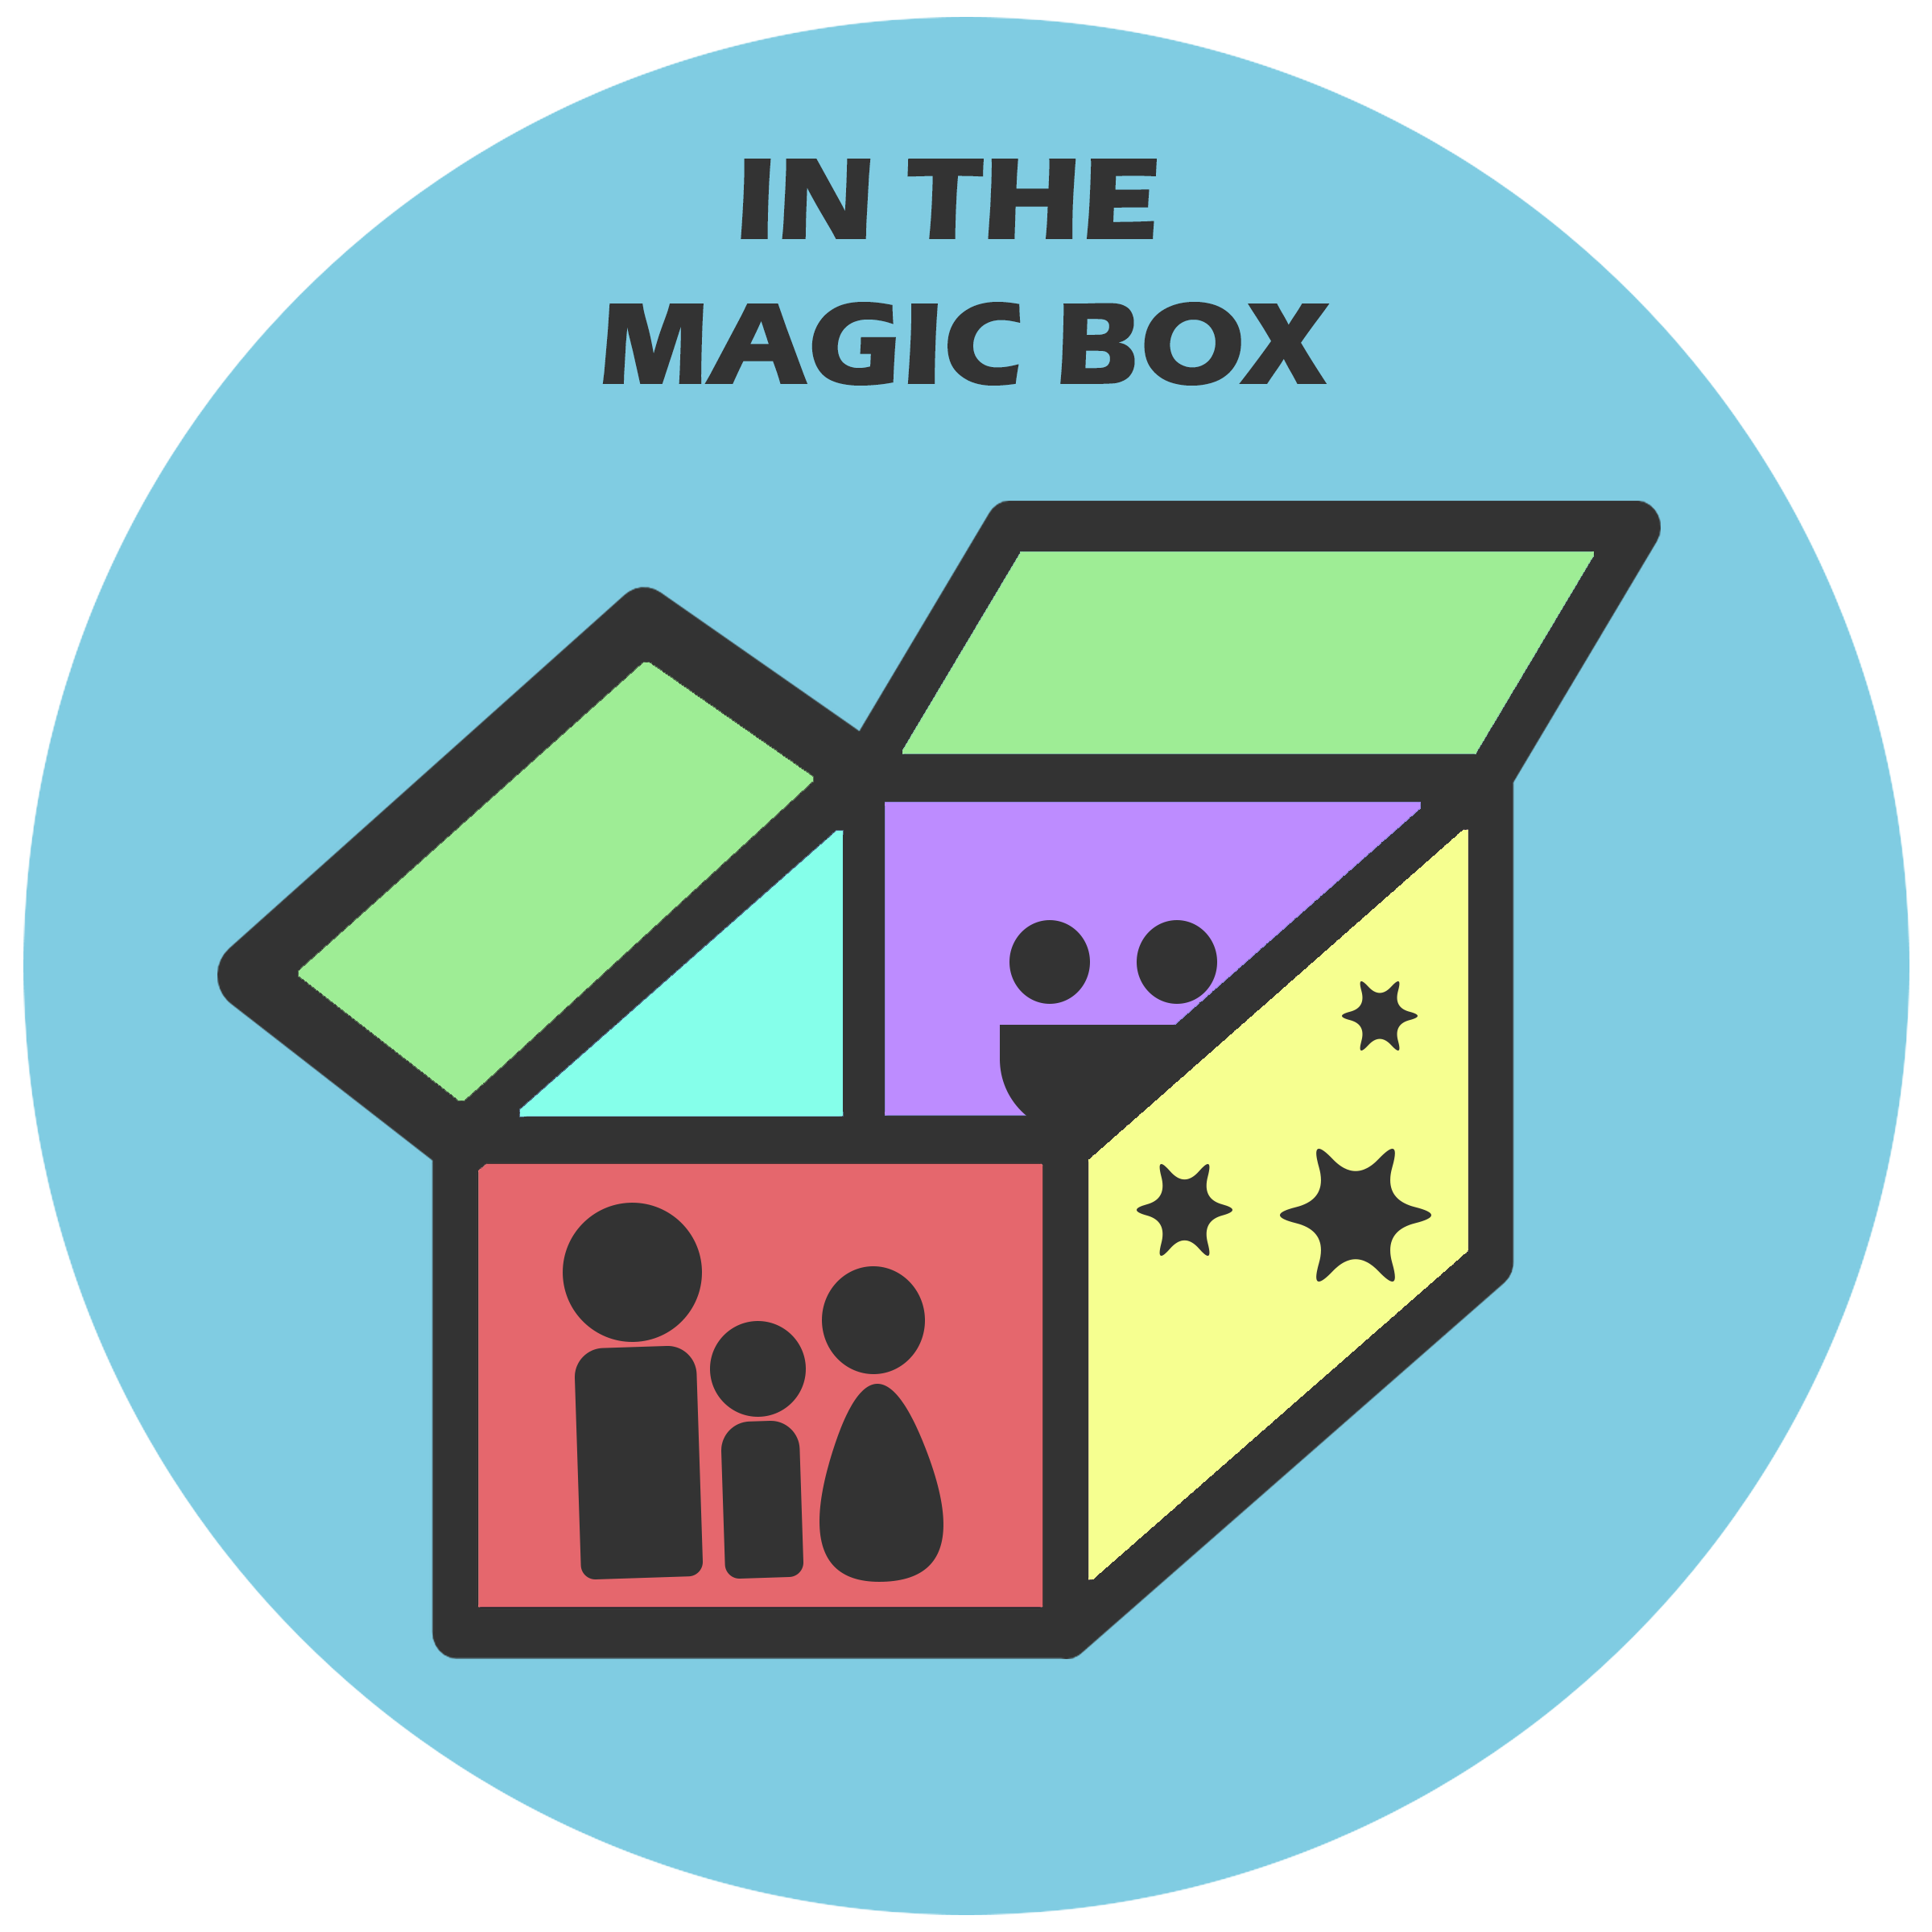 image library download Magic clipart magic box. Home in the logo.